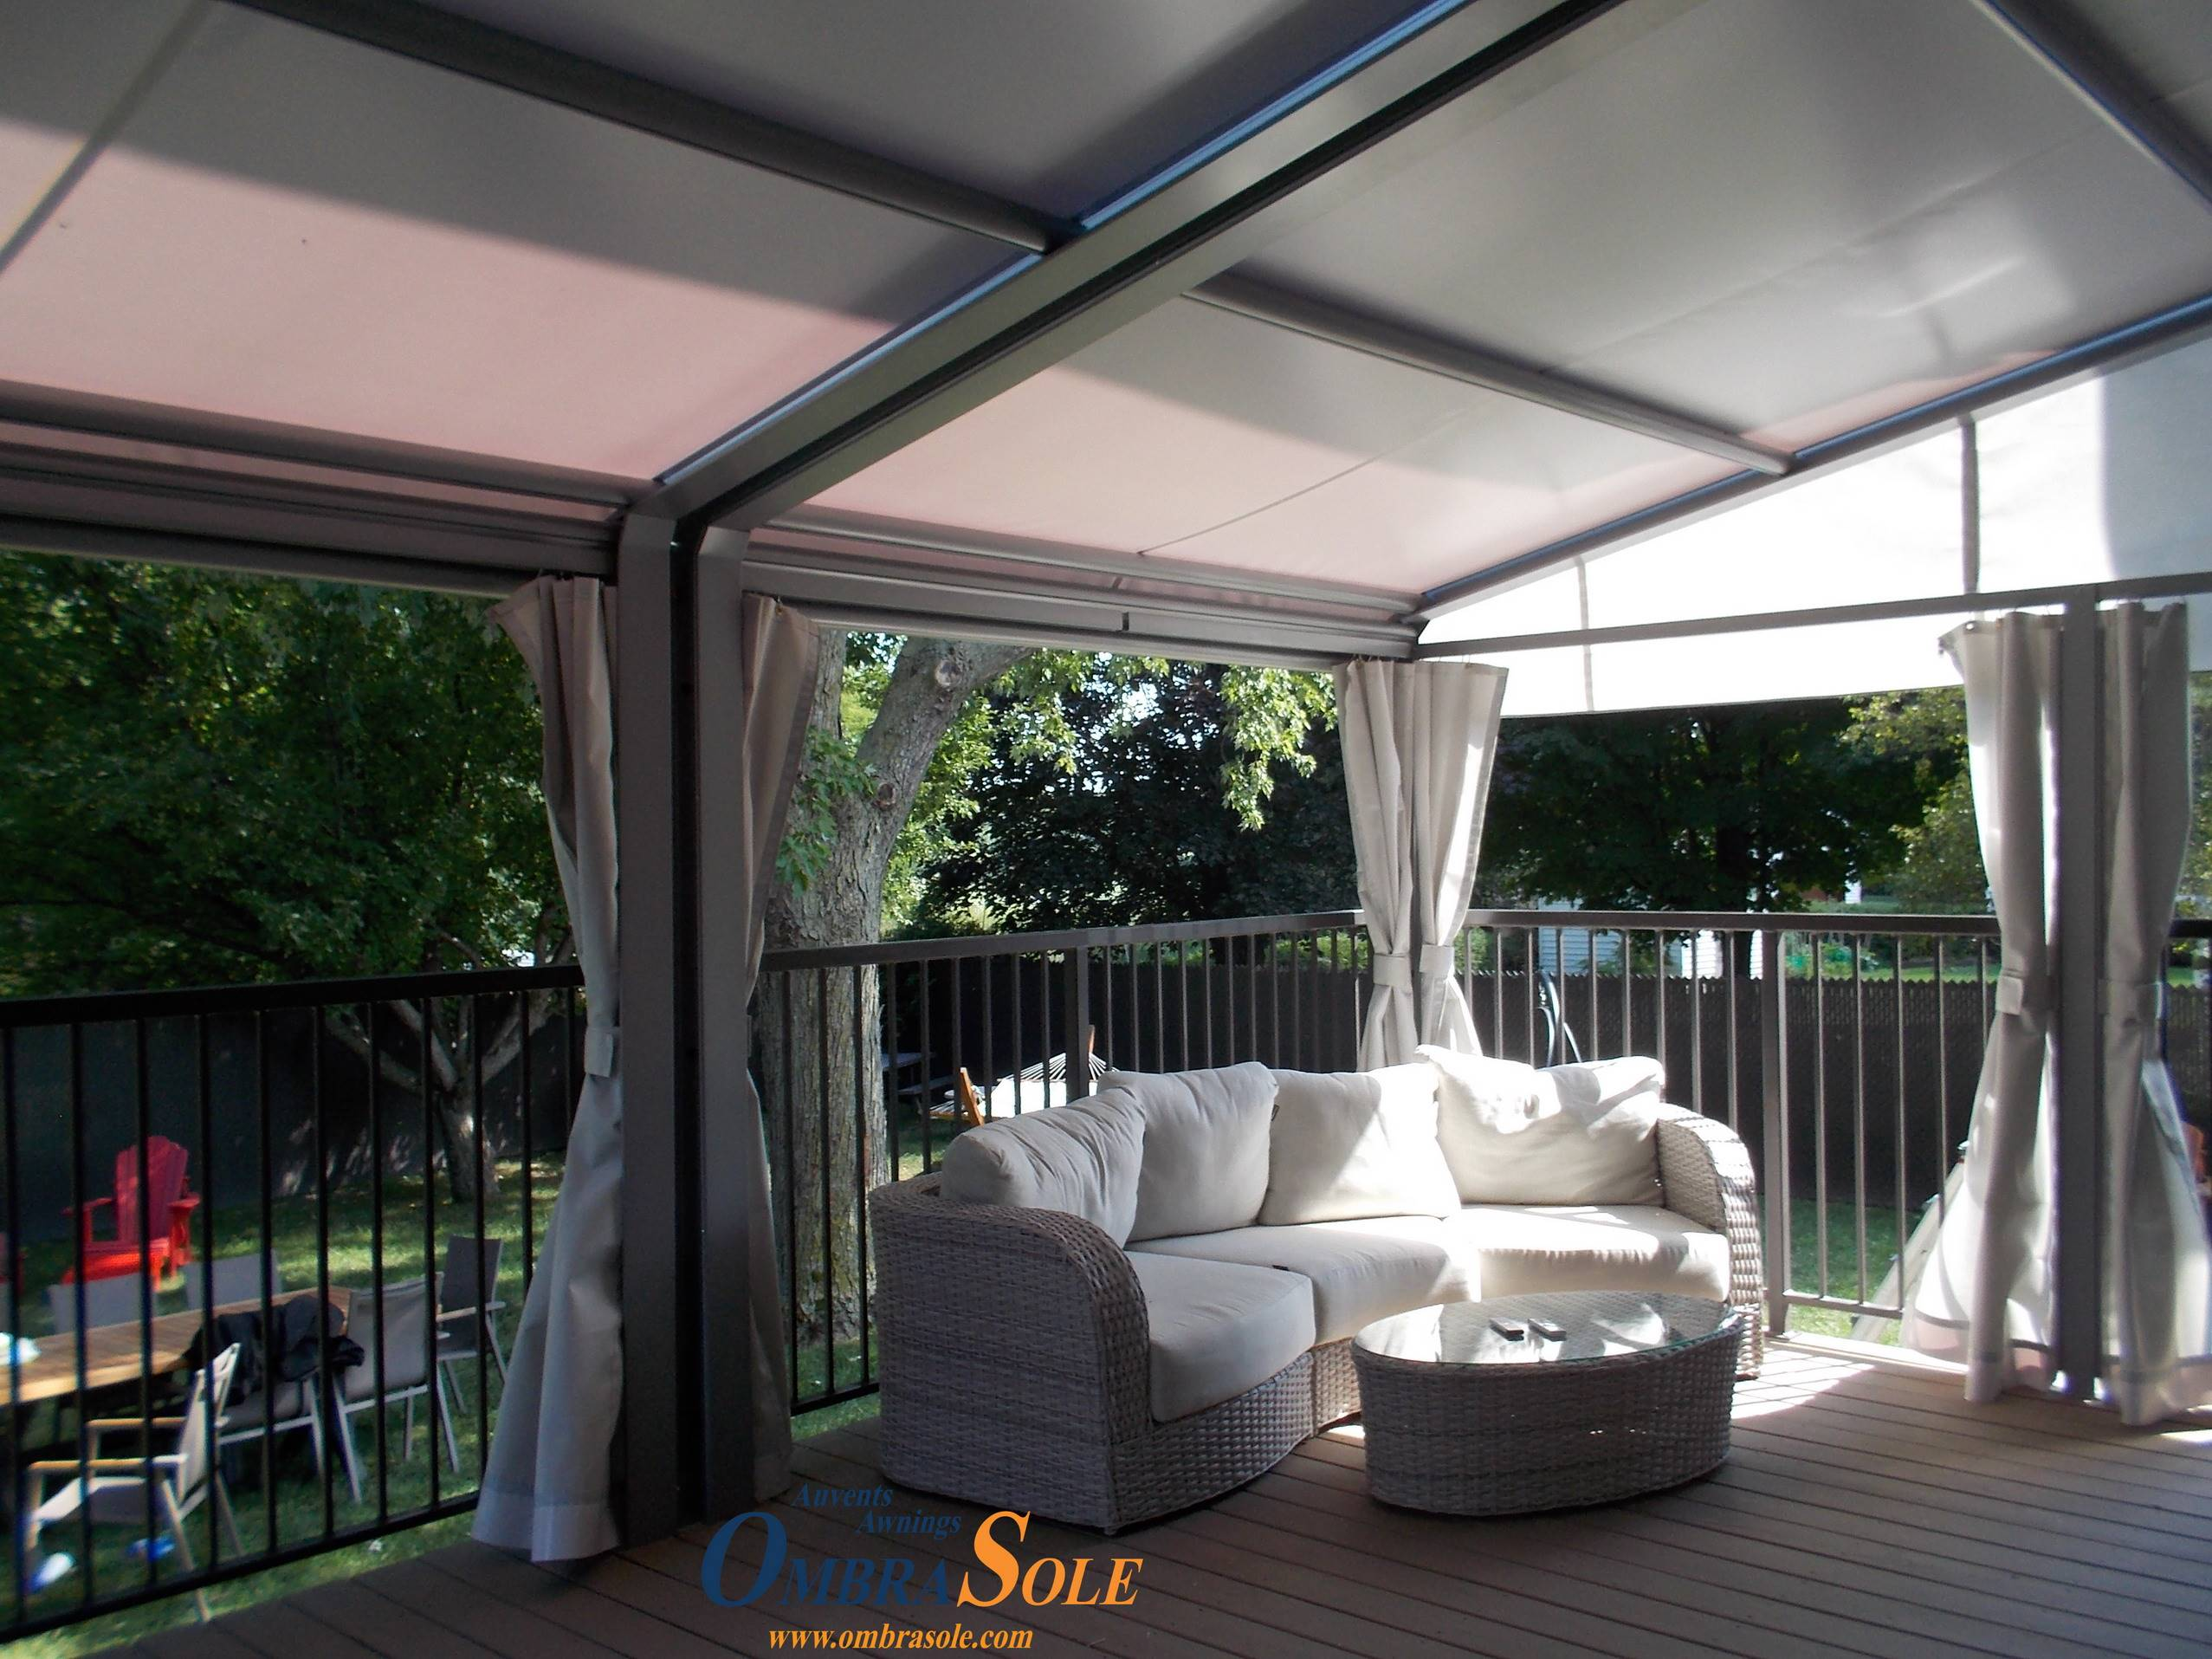 Awning fabrics: choosing the best canvas for your outdoor space